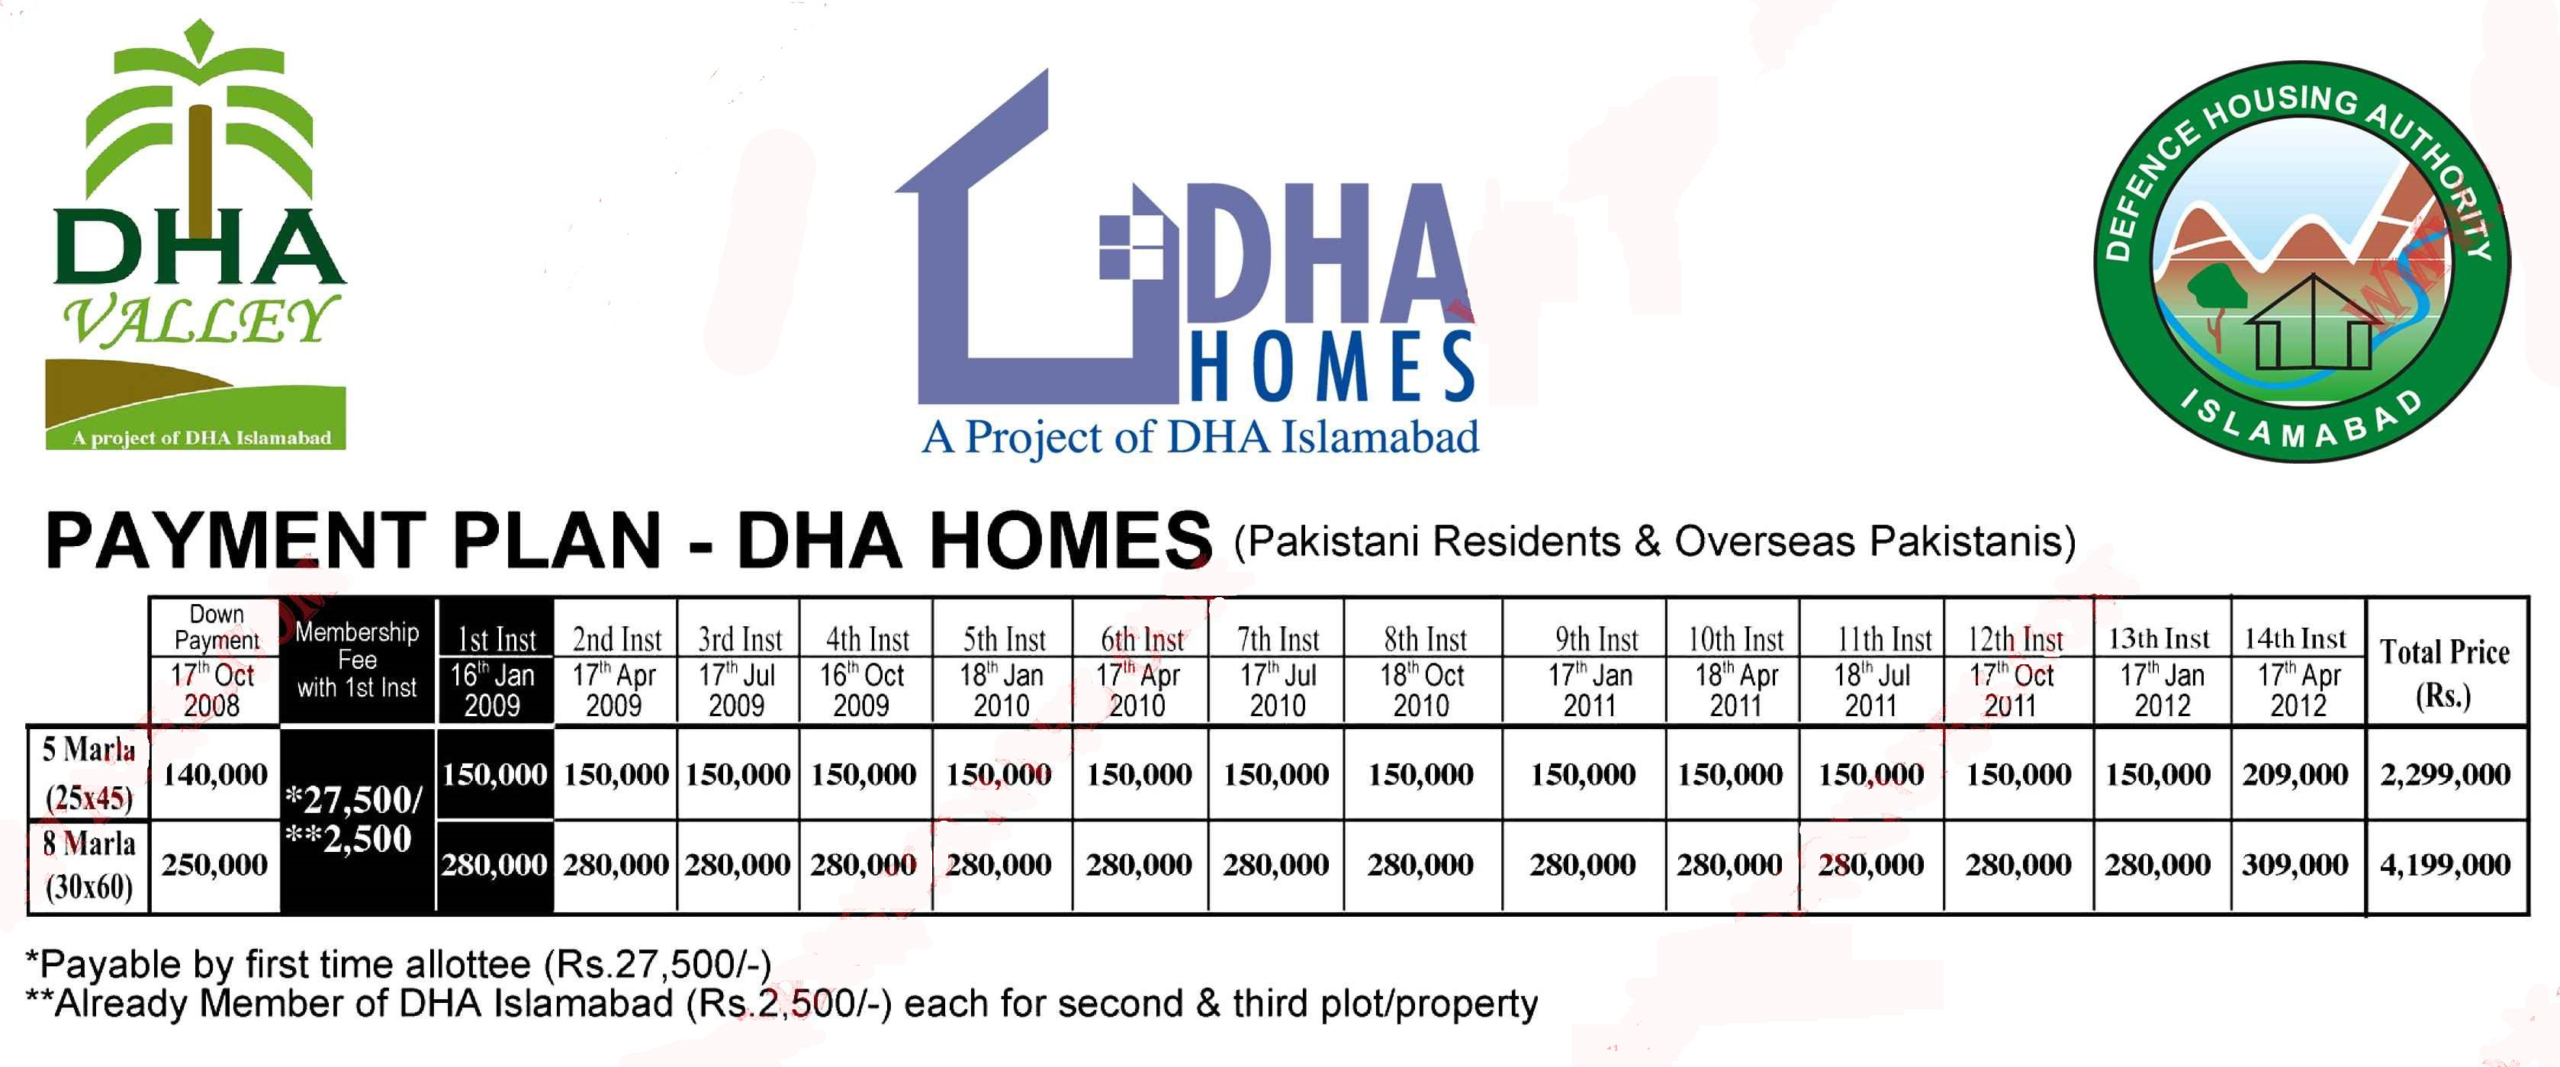 DHA Home Prices